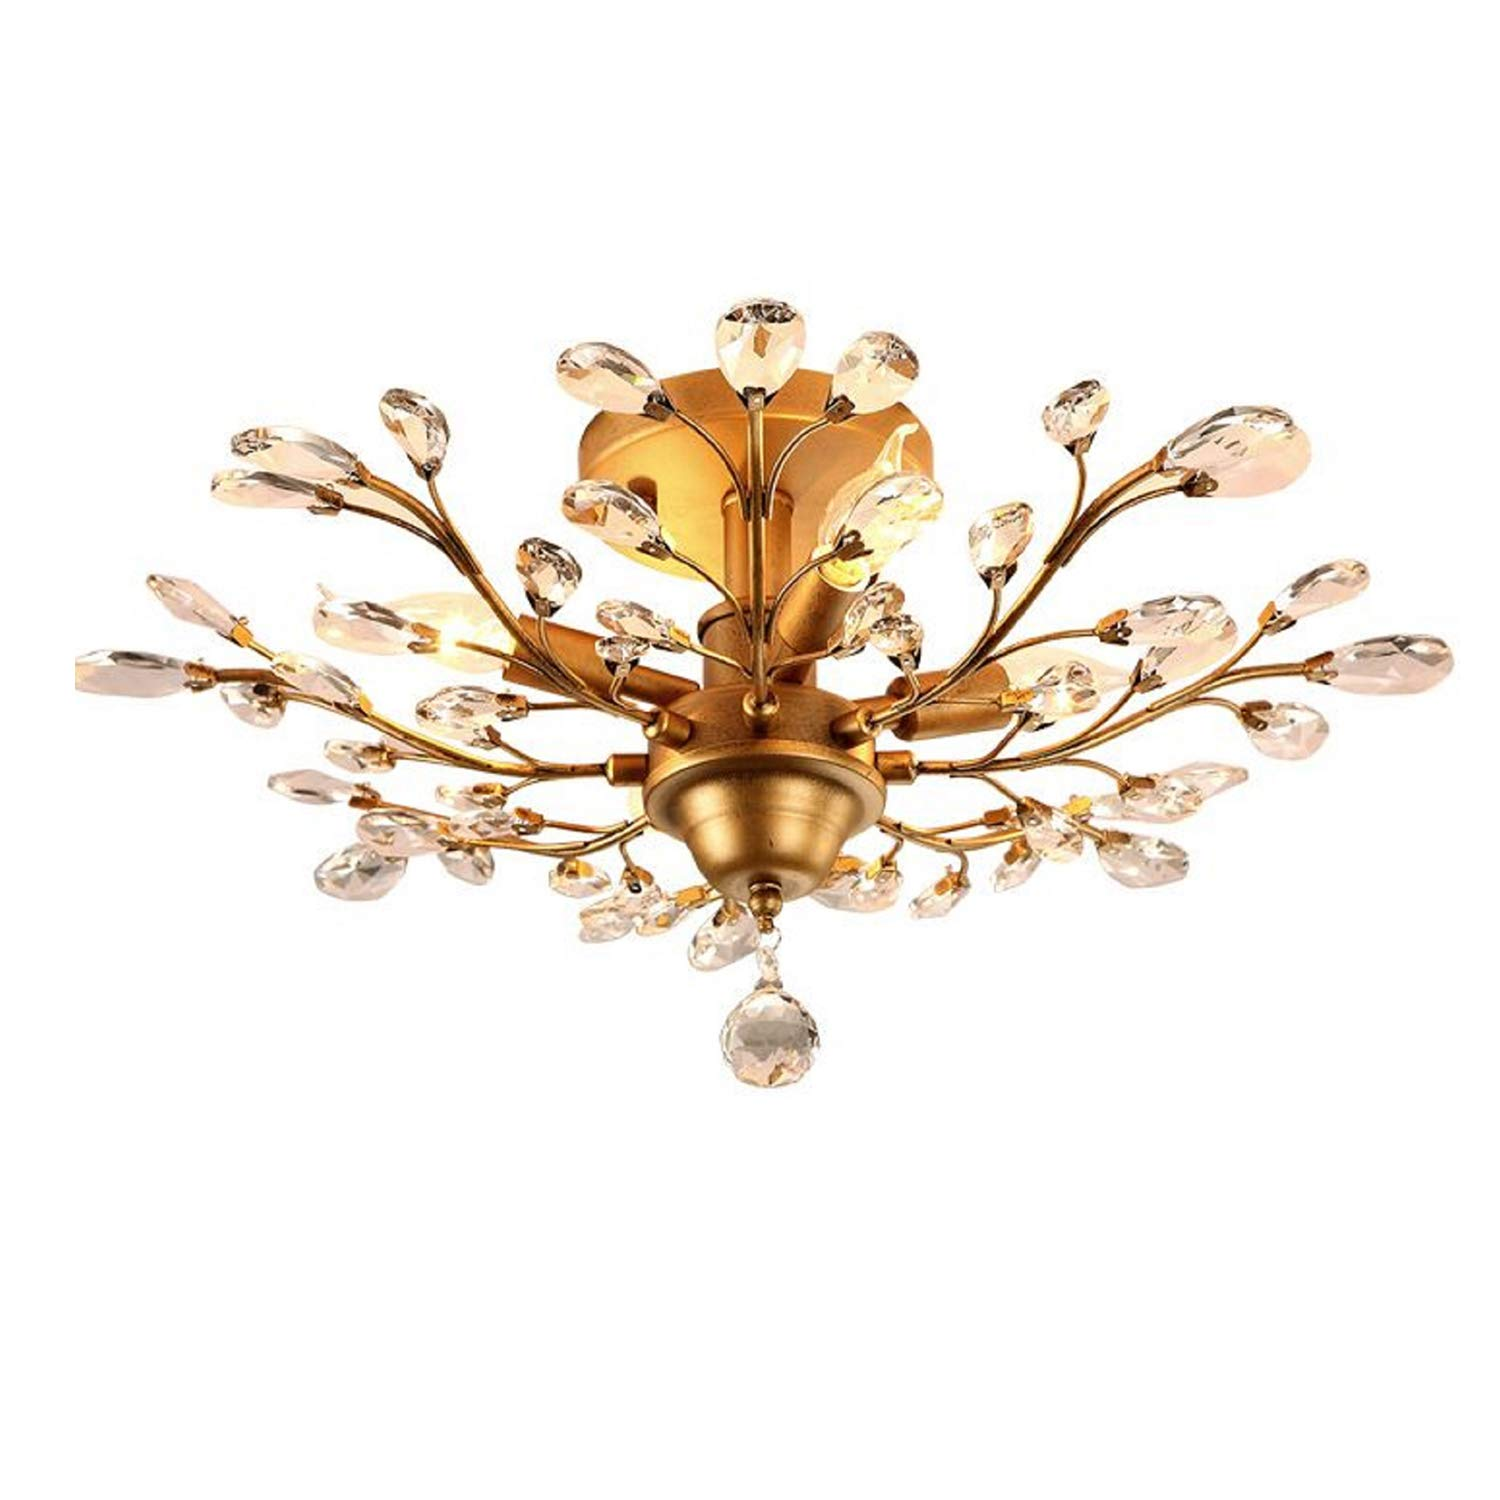 Injuicy Lighting Vintage K9 Crystal Metal Edison Branches Led Ceiling Lights Fixtures Retro Wrought Iron French Villa Ceiling Lamp Shade for Living Room Bedroom Porch Chandelier (Gold Dia.24.4 inch)